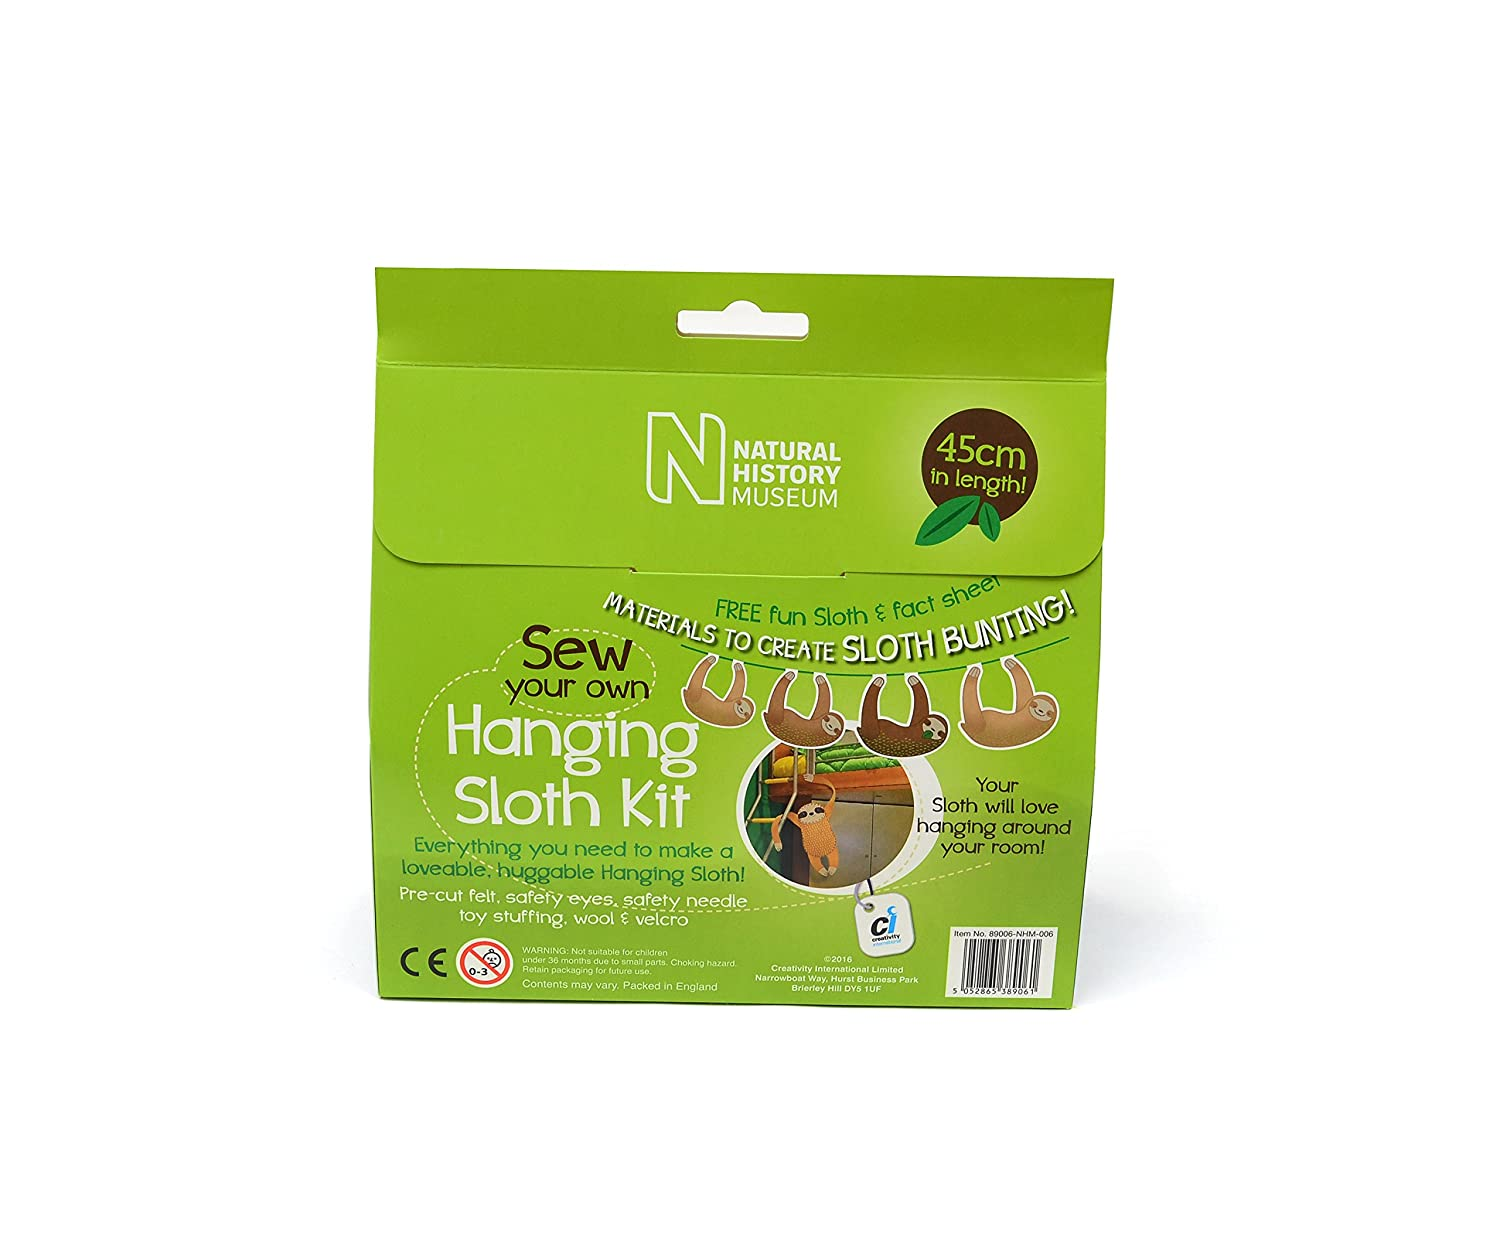 Natural History Museum 89006-NHM-006 Sew Your Own Hanging Sloth Craft Kit with Fact and Activity Sheet by: Amazon.es: Juguetes y juegos